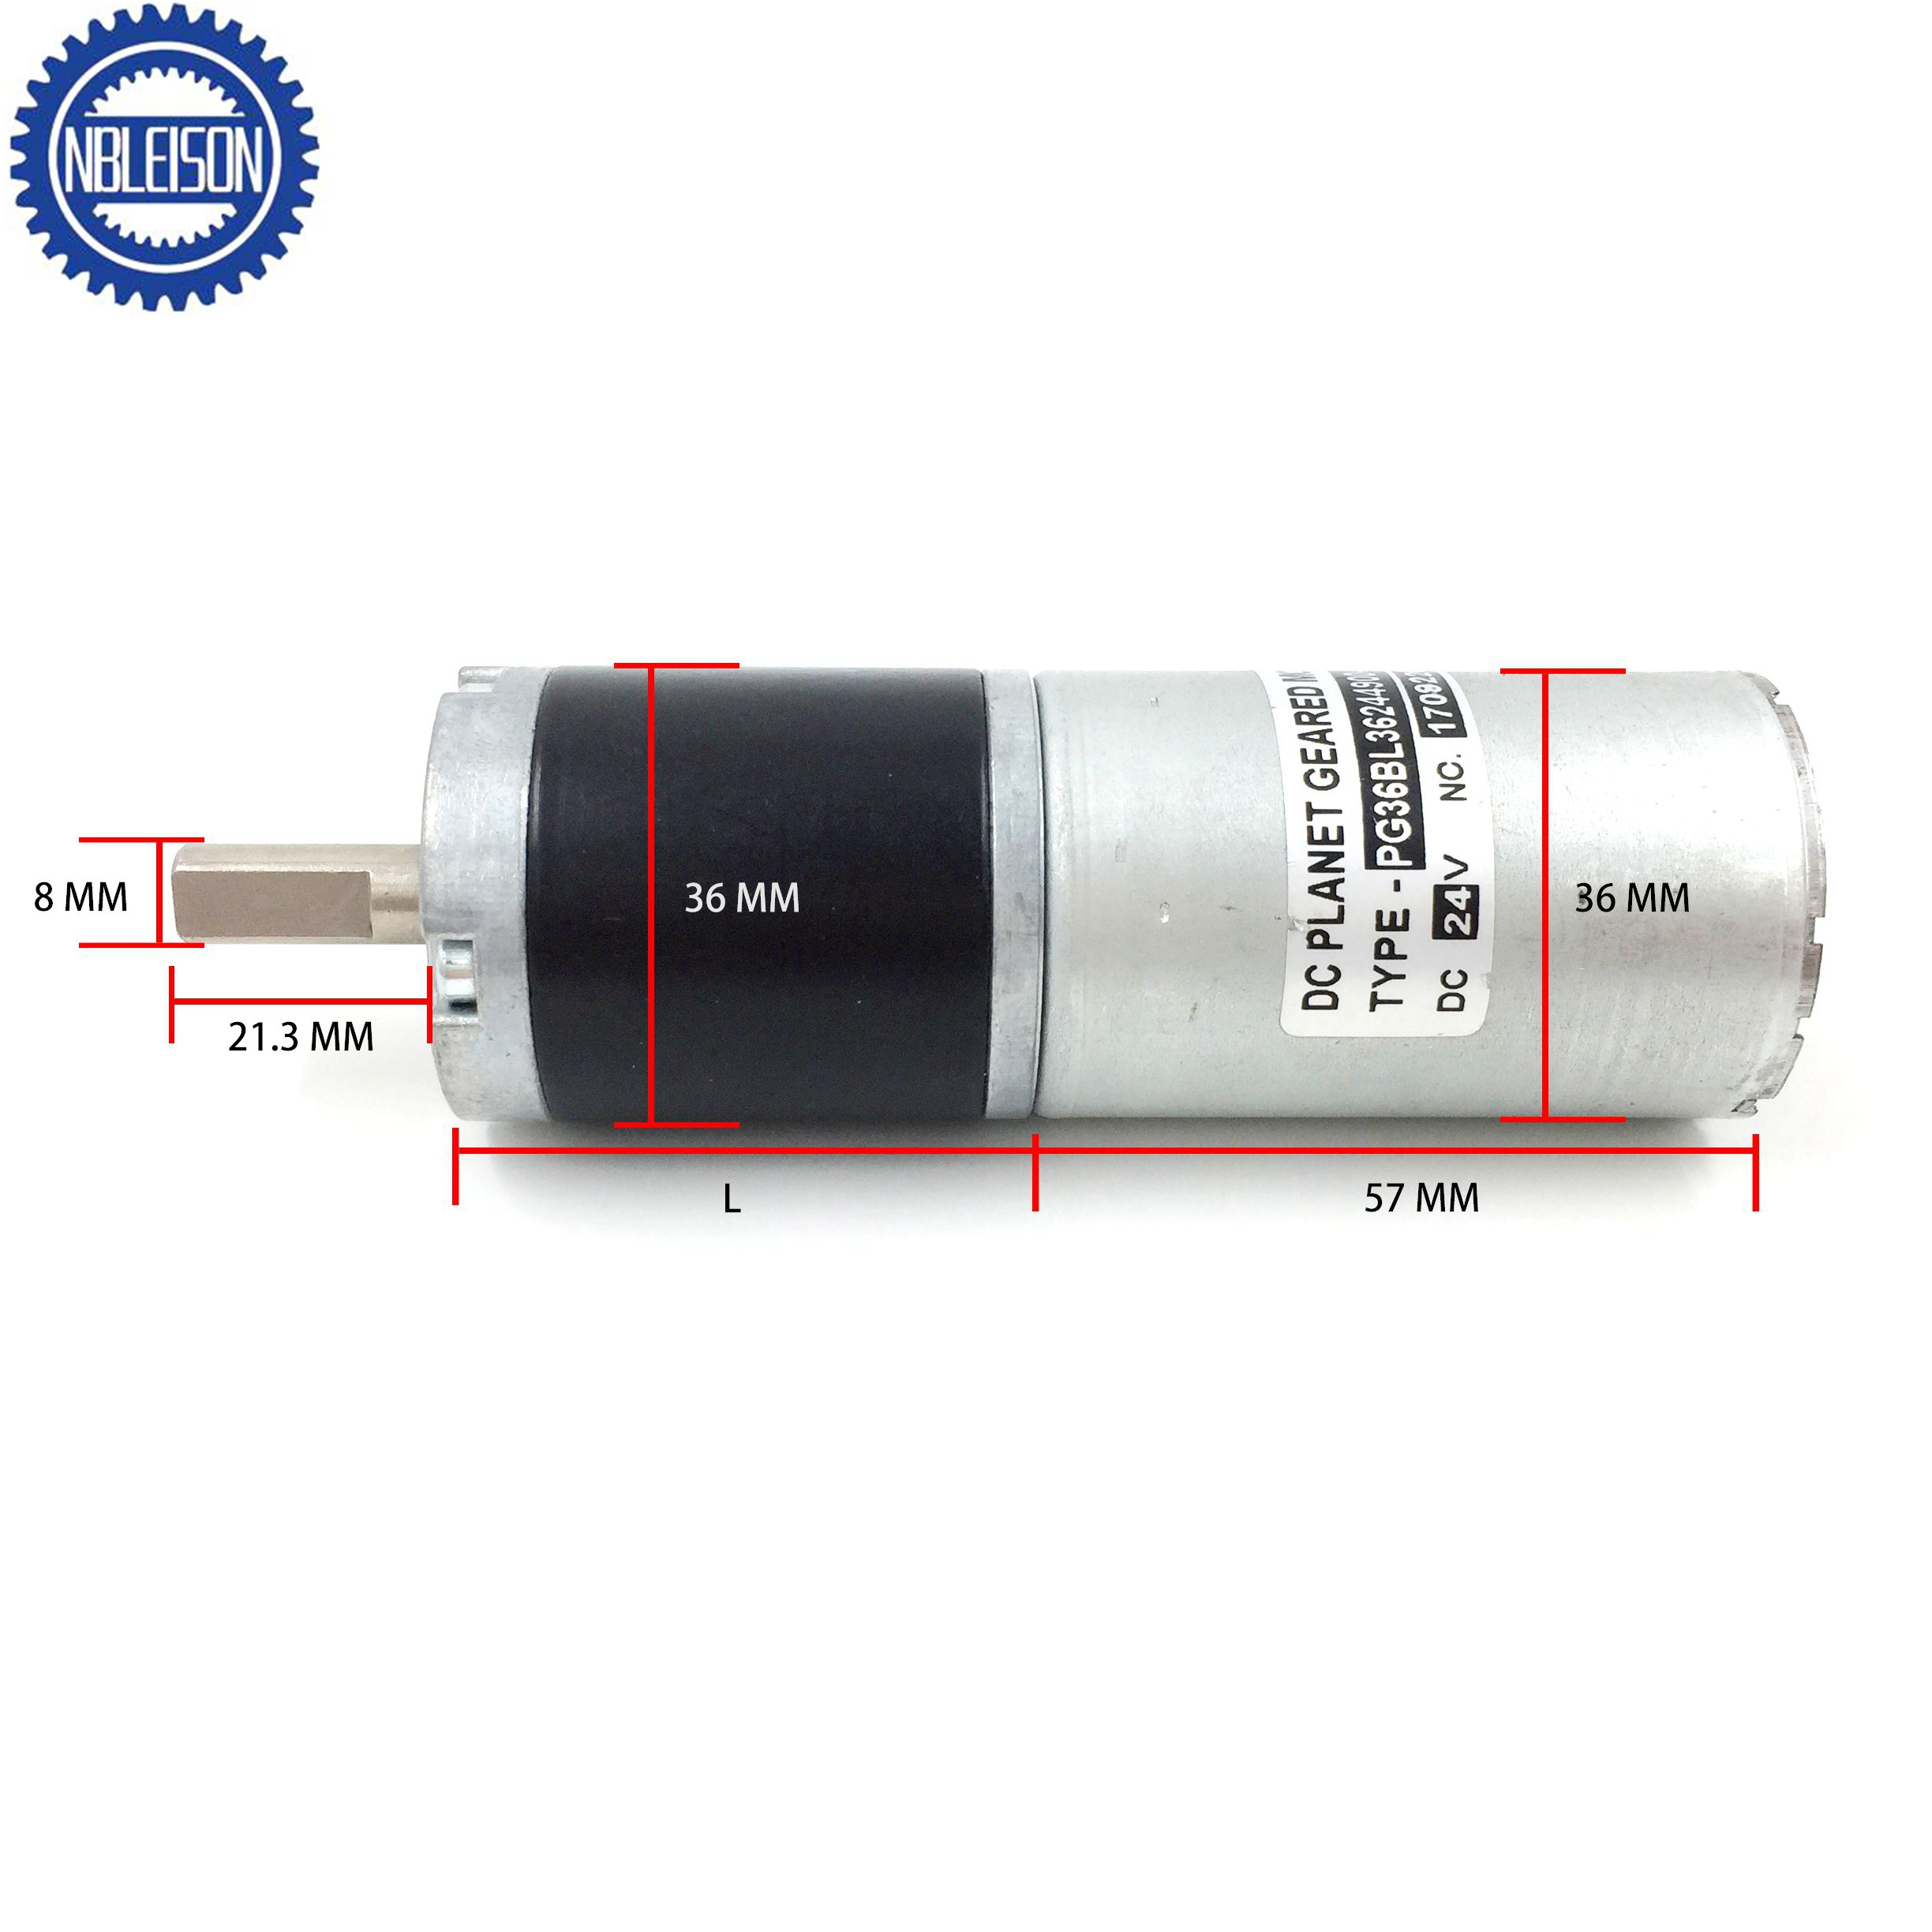 PG36BL36 Dc Planetary Gear Motor(Brushless Type)